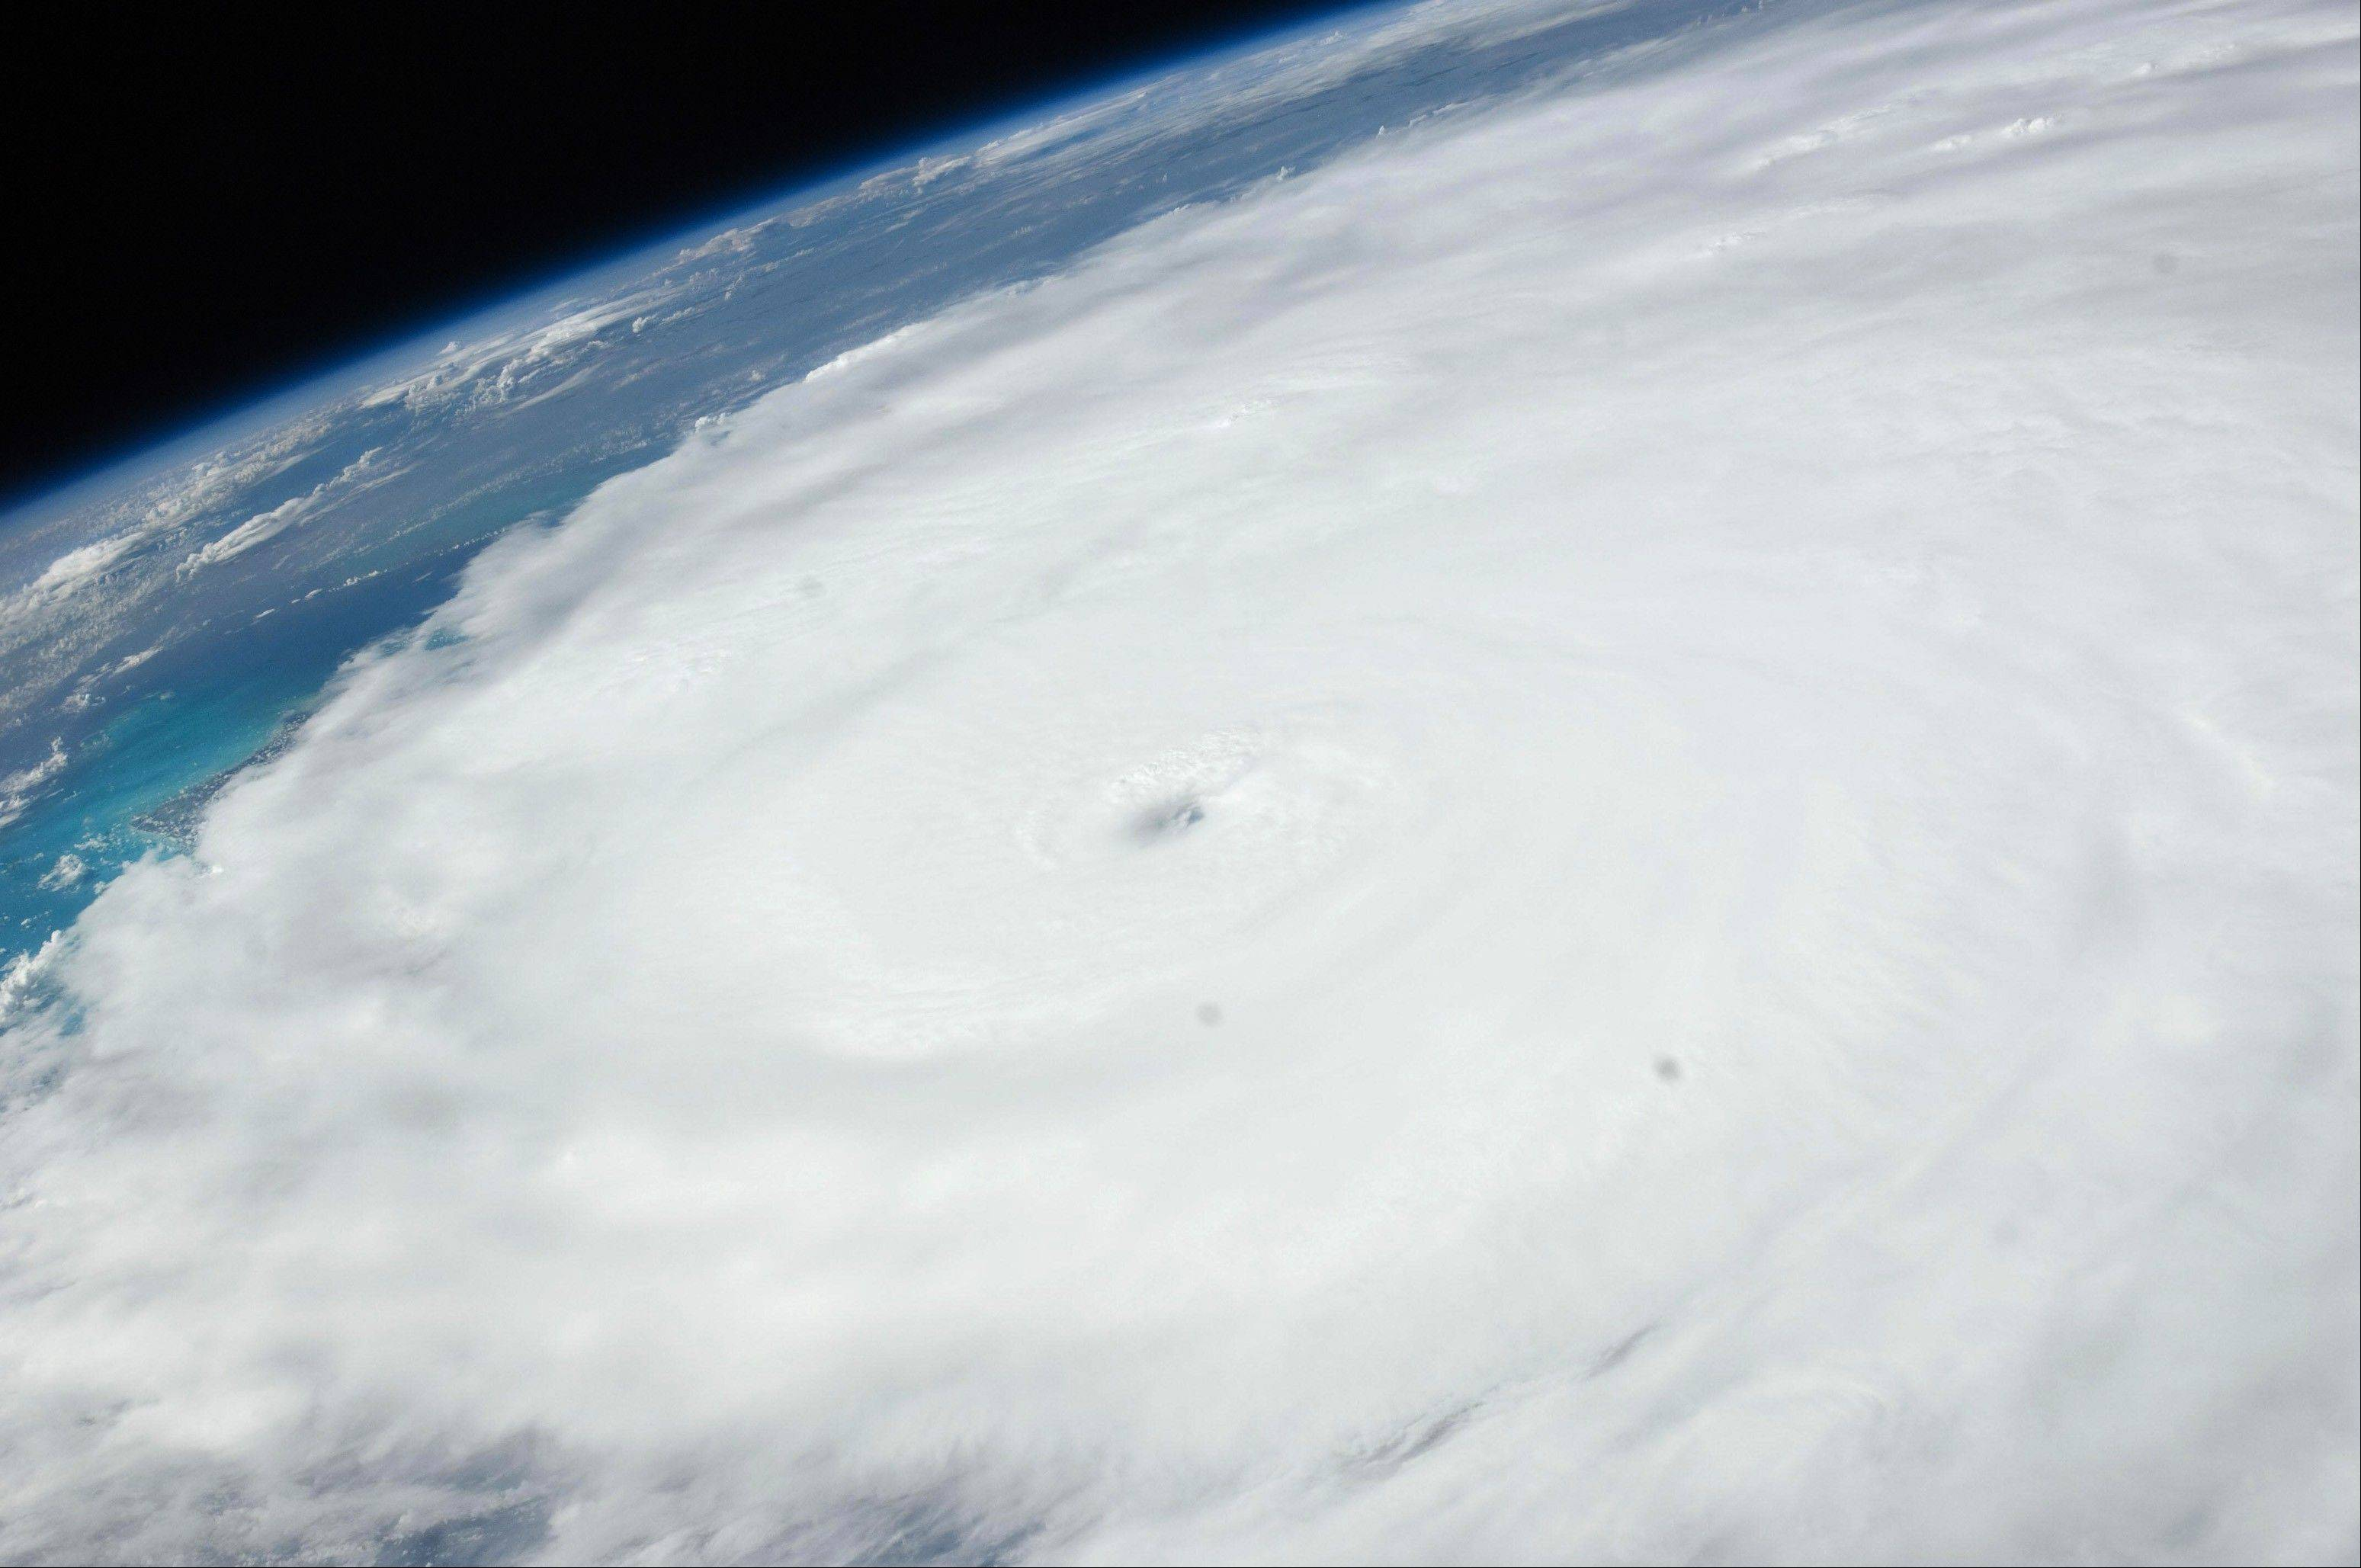 An image provided by NASA shows Hurricane Irene as photographed from onboard the International Space Station. The image, captured with a 38 mm lens, reveals the eye of the storm at center of the frame.